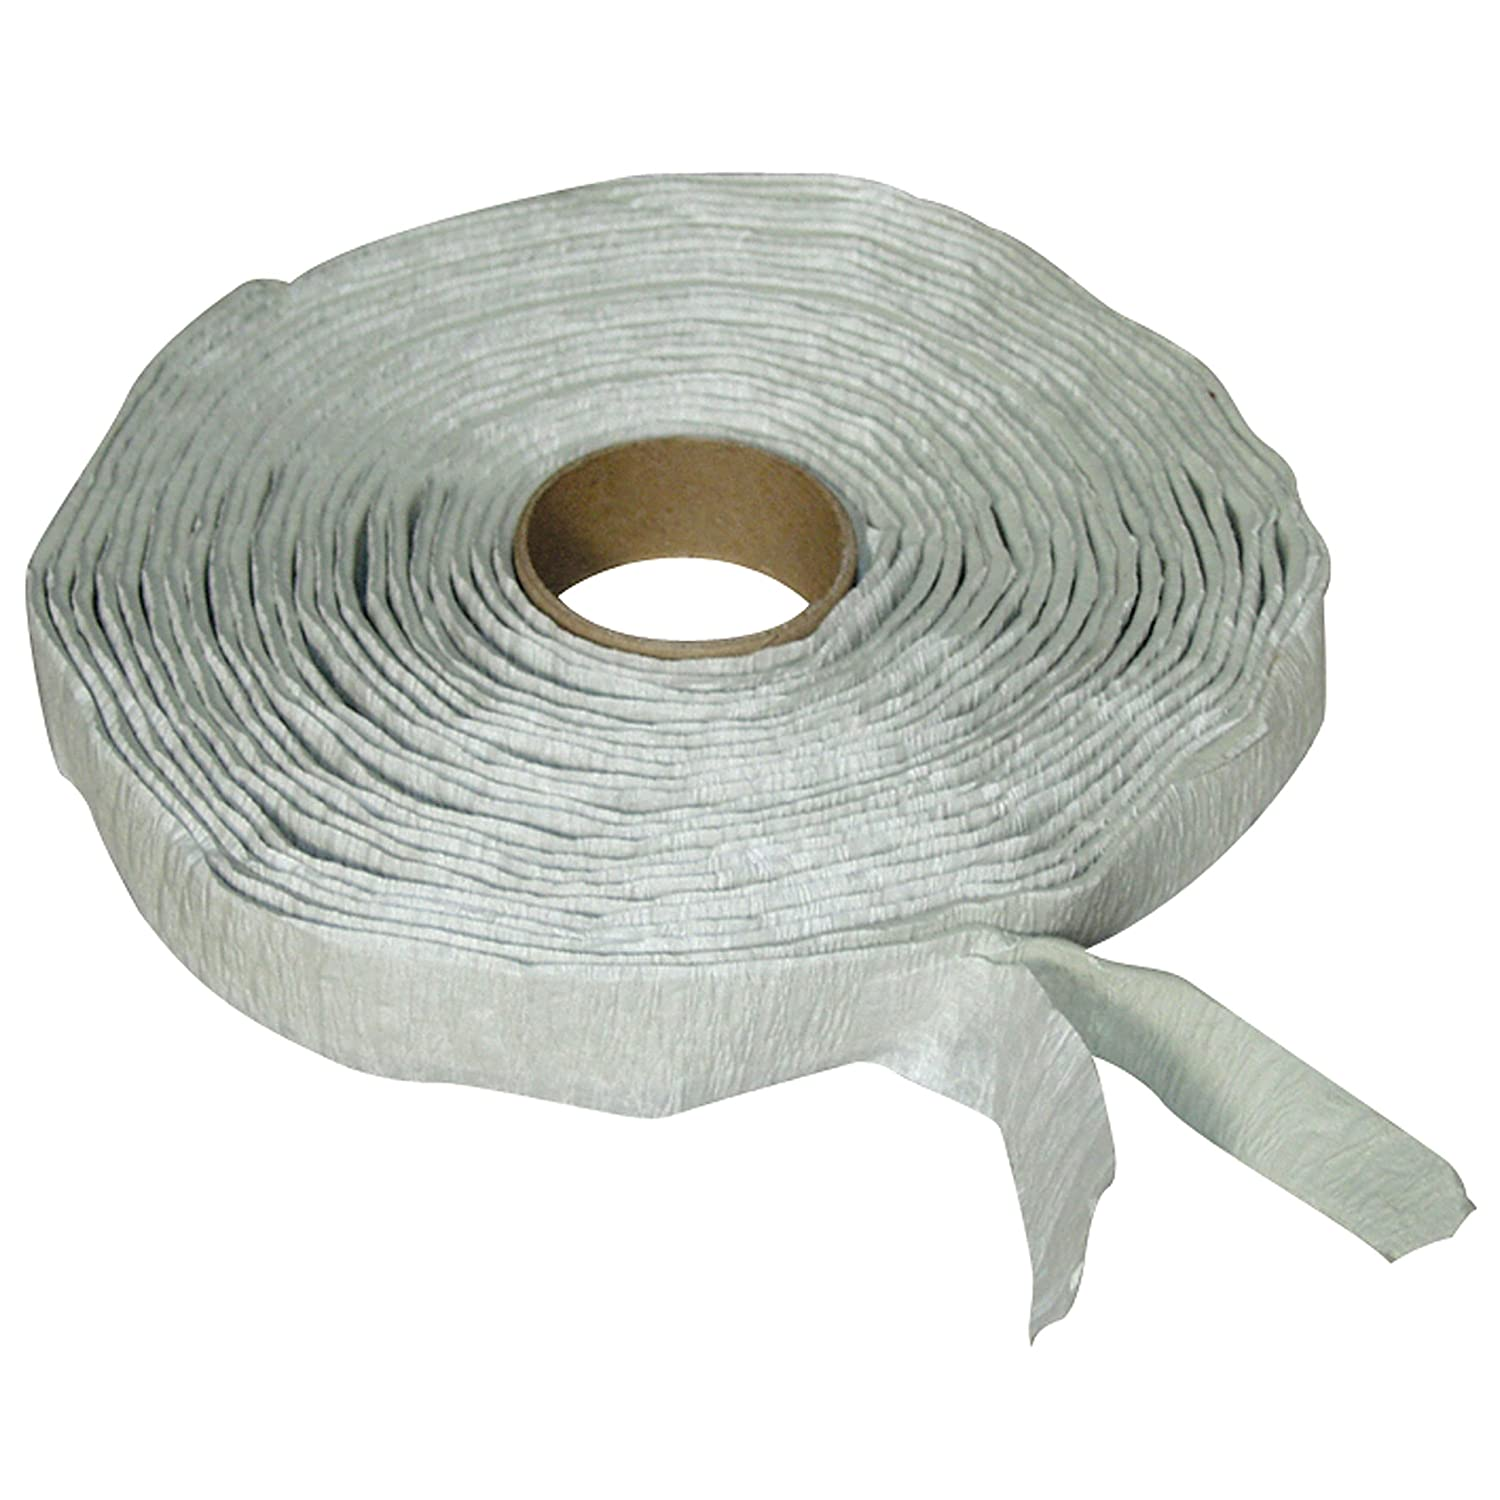 Pack of 8 Hengs 16-5831 Trimmable Butyl Tape 1//8 x 3//4 x 30 1//8 x 3//4 x 30